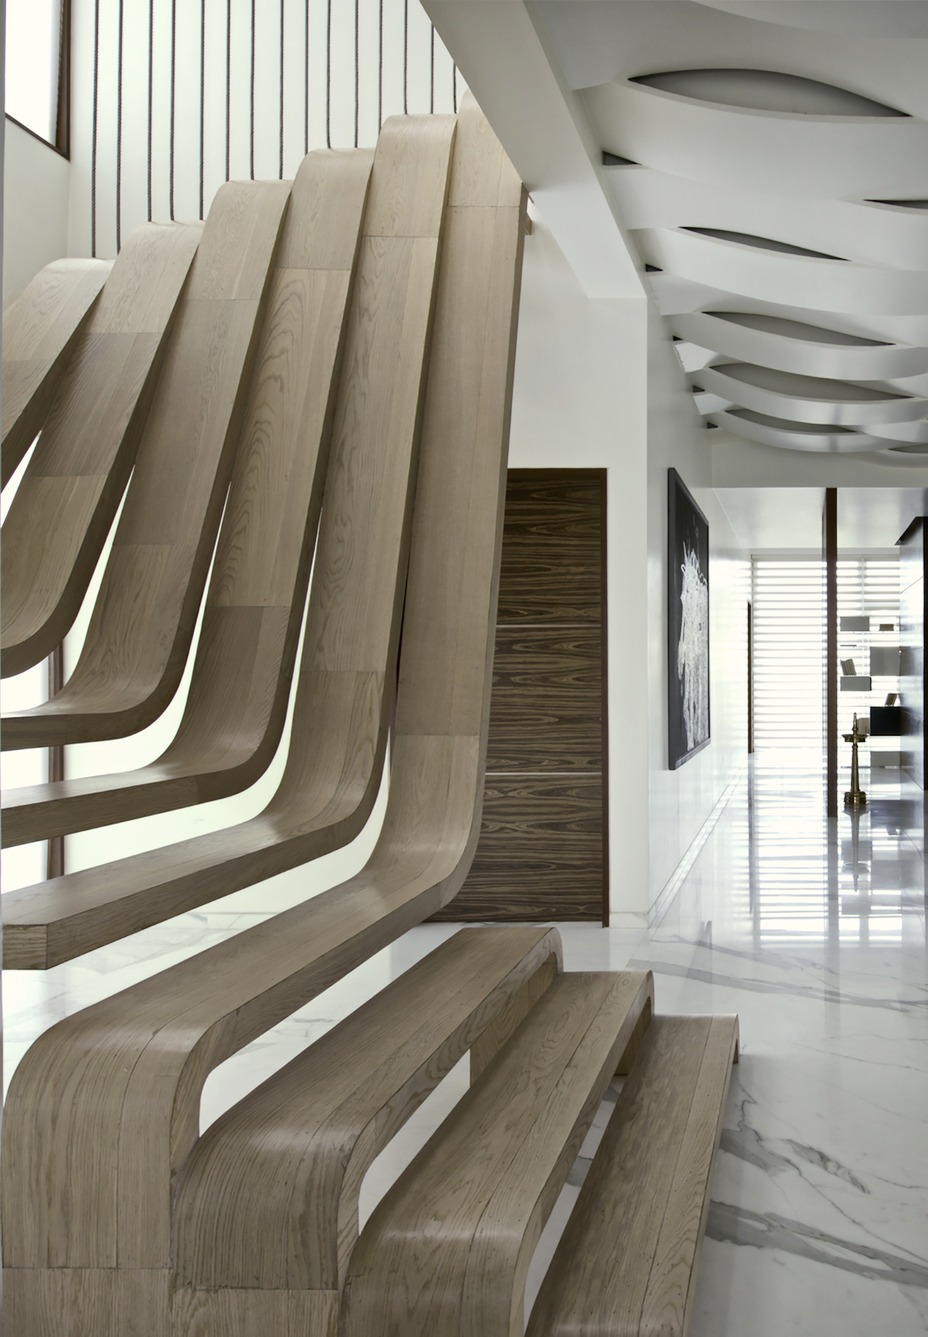 Coolest Staircase Designs That Will Reinvent And Reinterpret - Home staircase designs